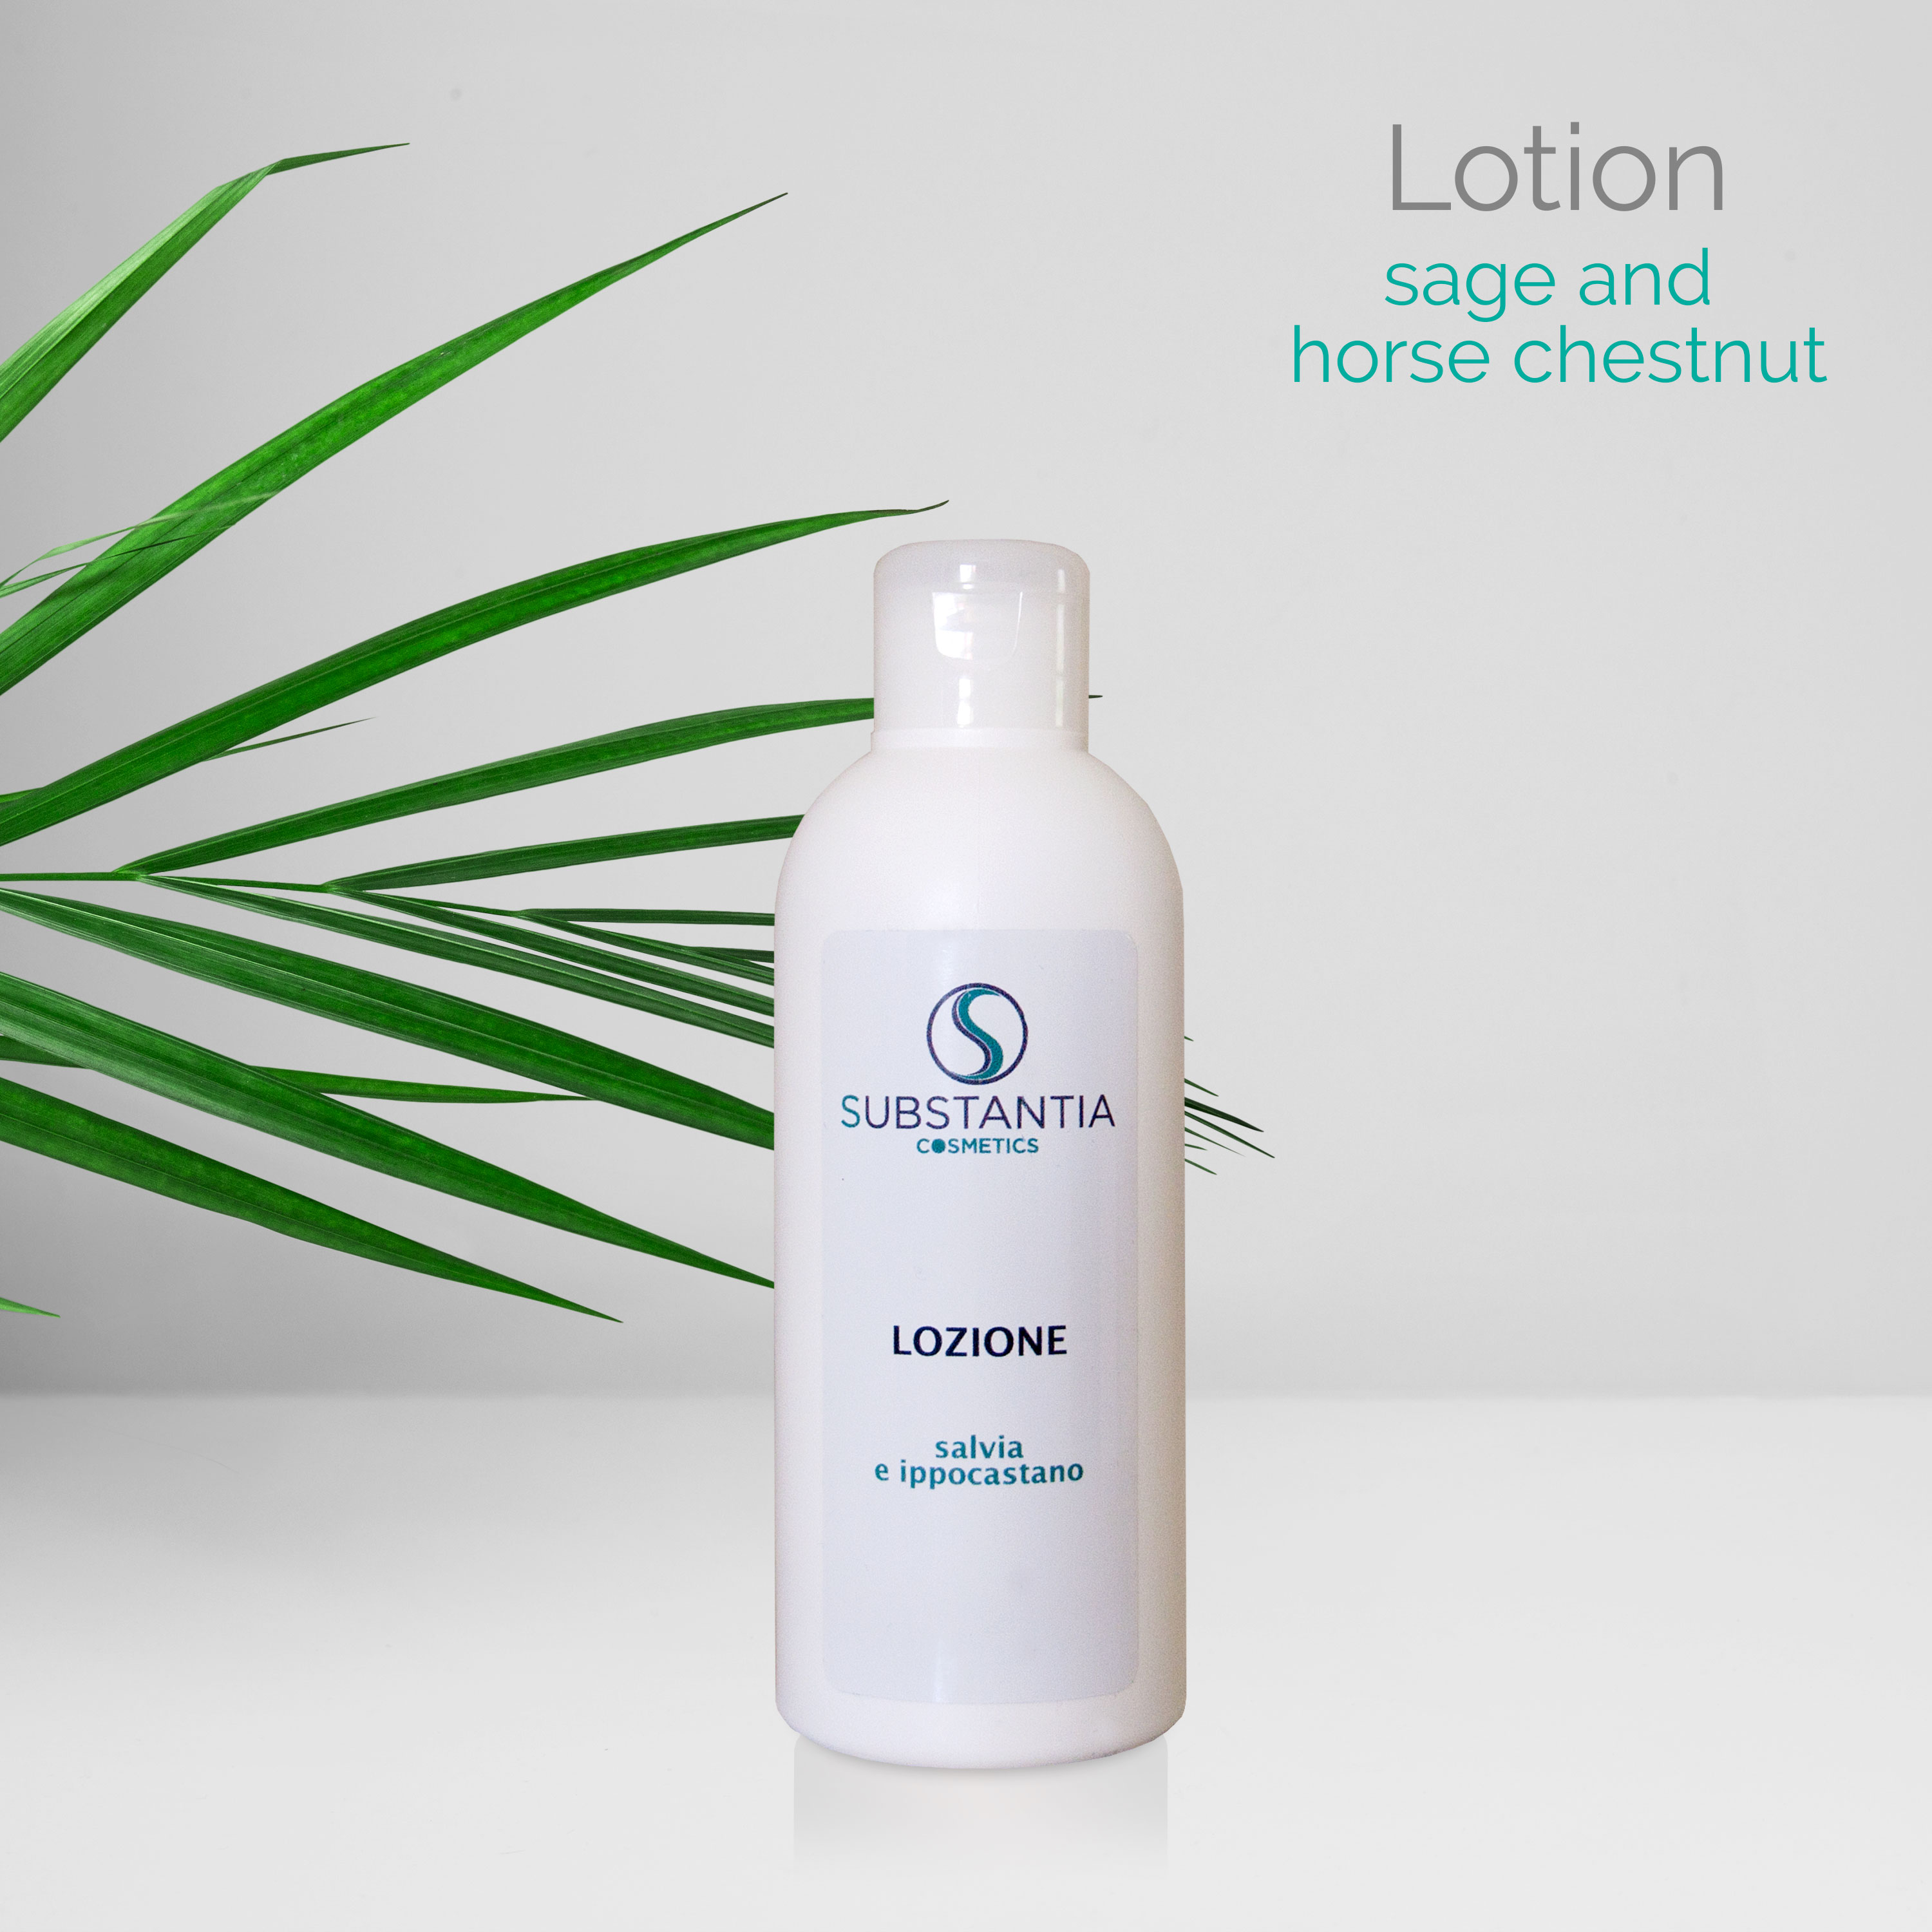 Lotion , sage and horse chestnut